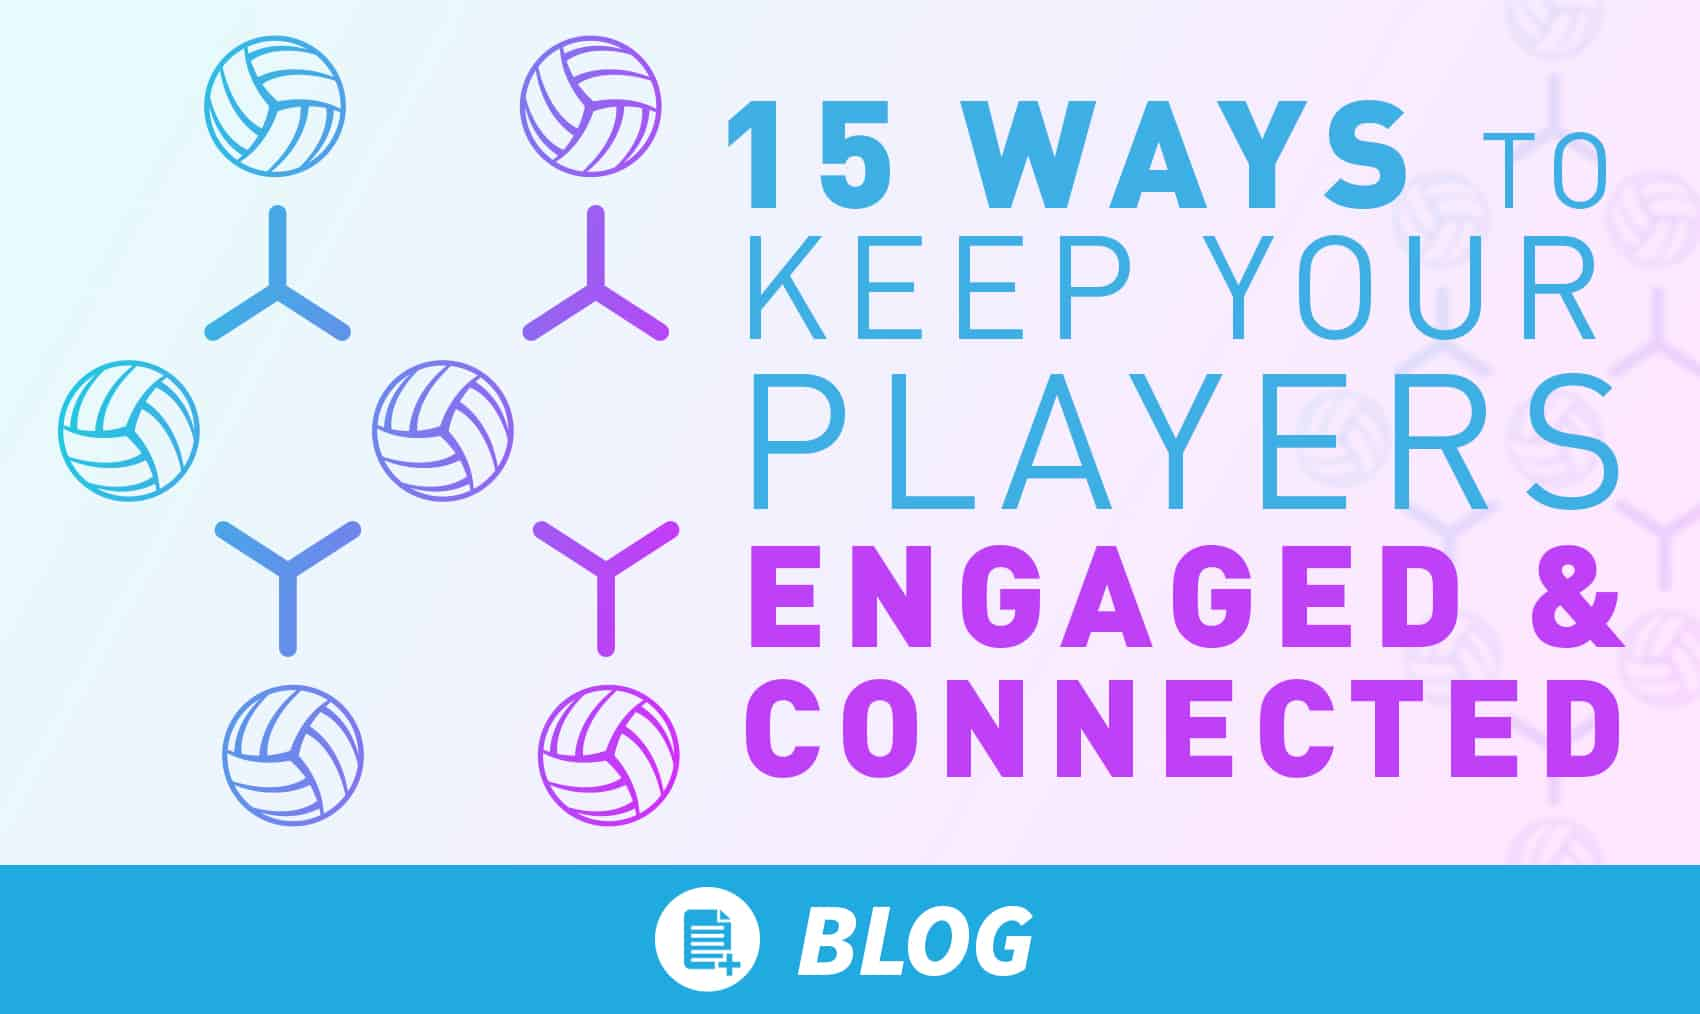 15 ways to keep your players engaged